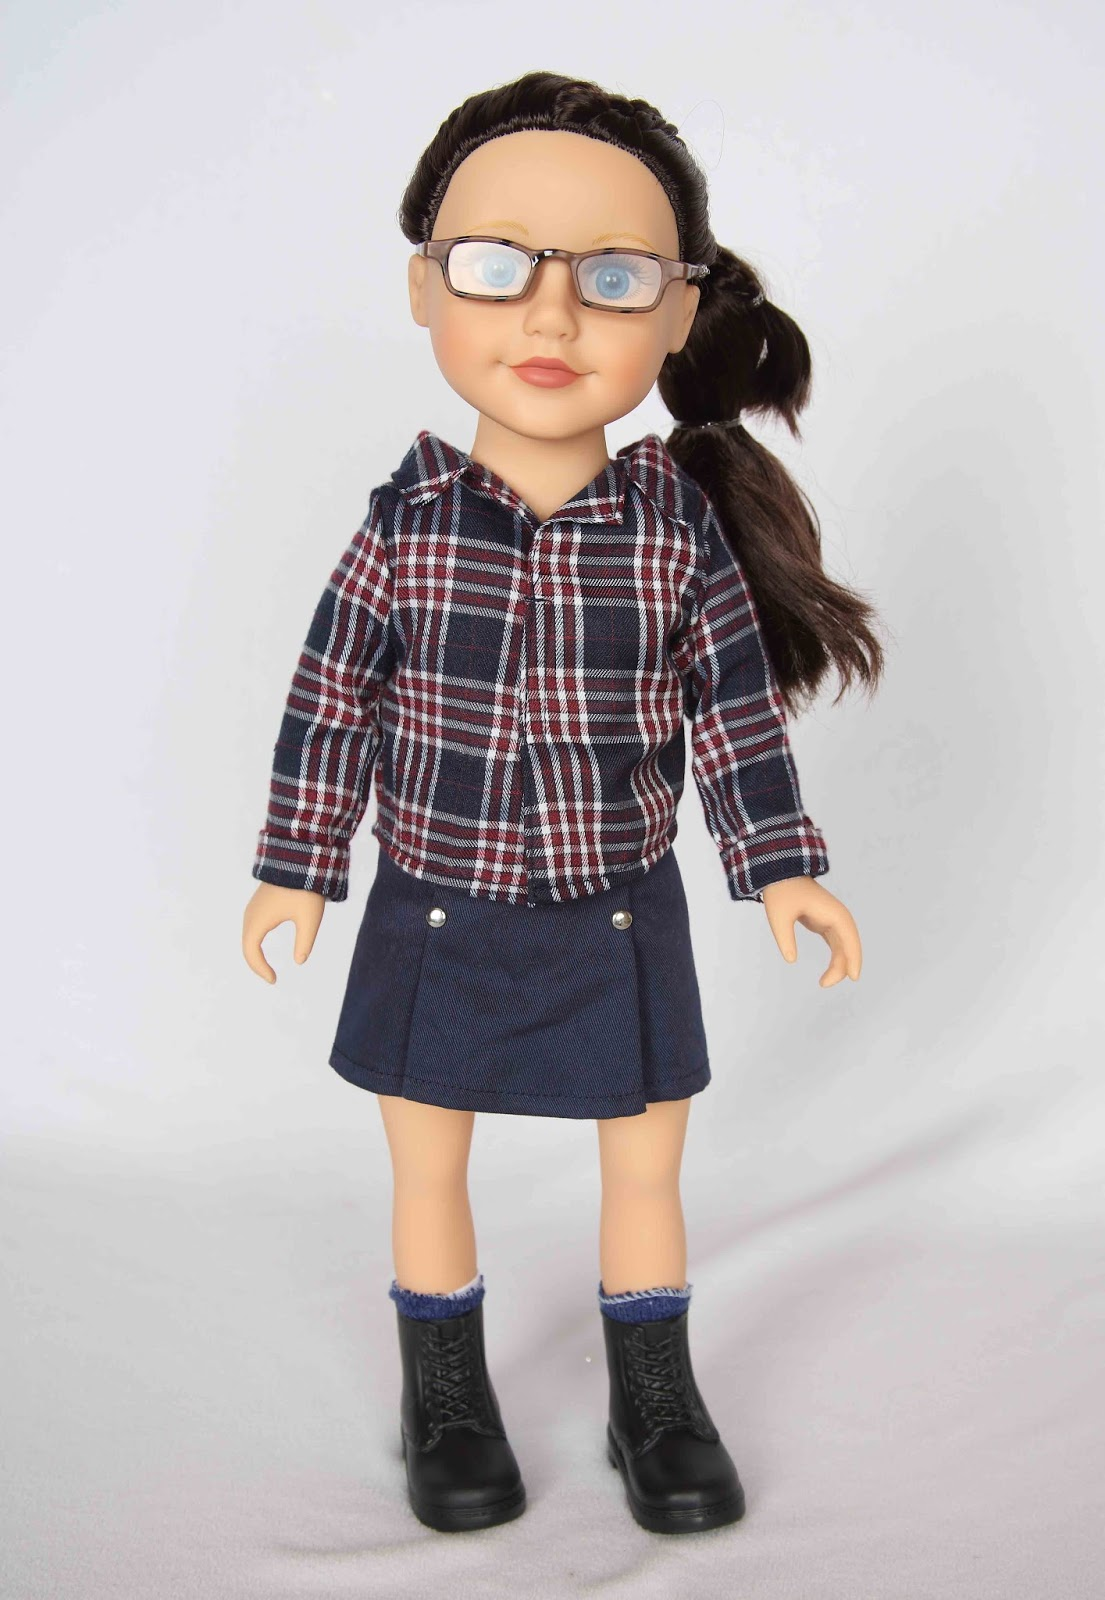 My Journey Girls Dolls Adventures: A New Outfit For Dana